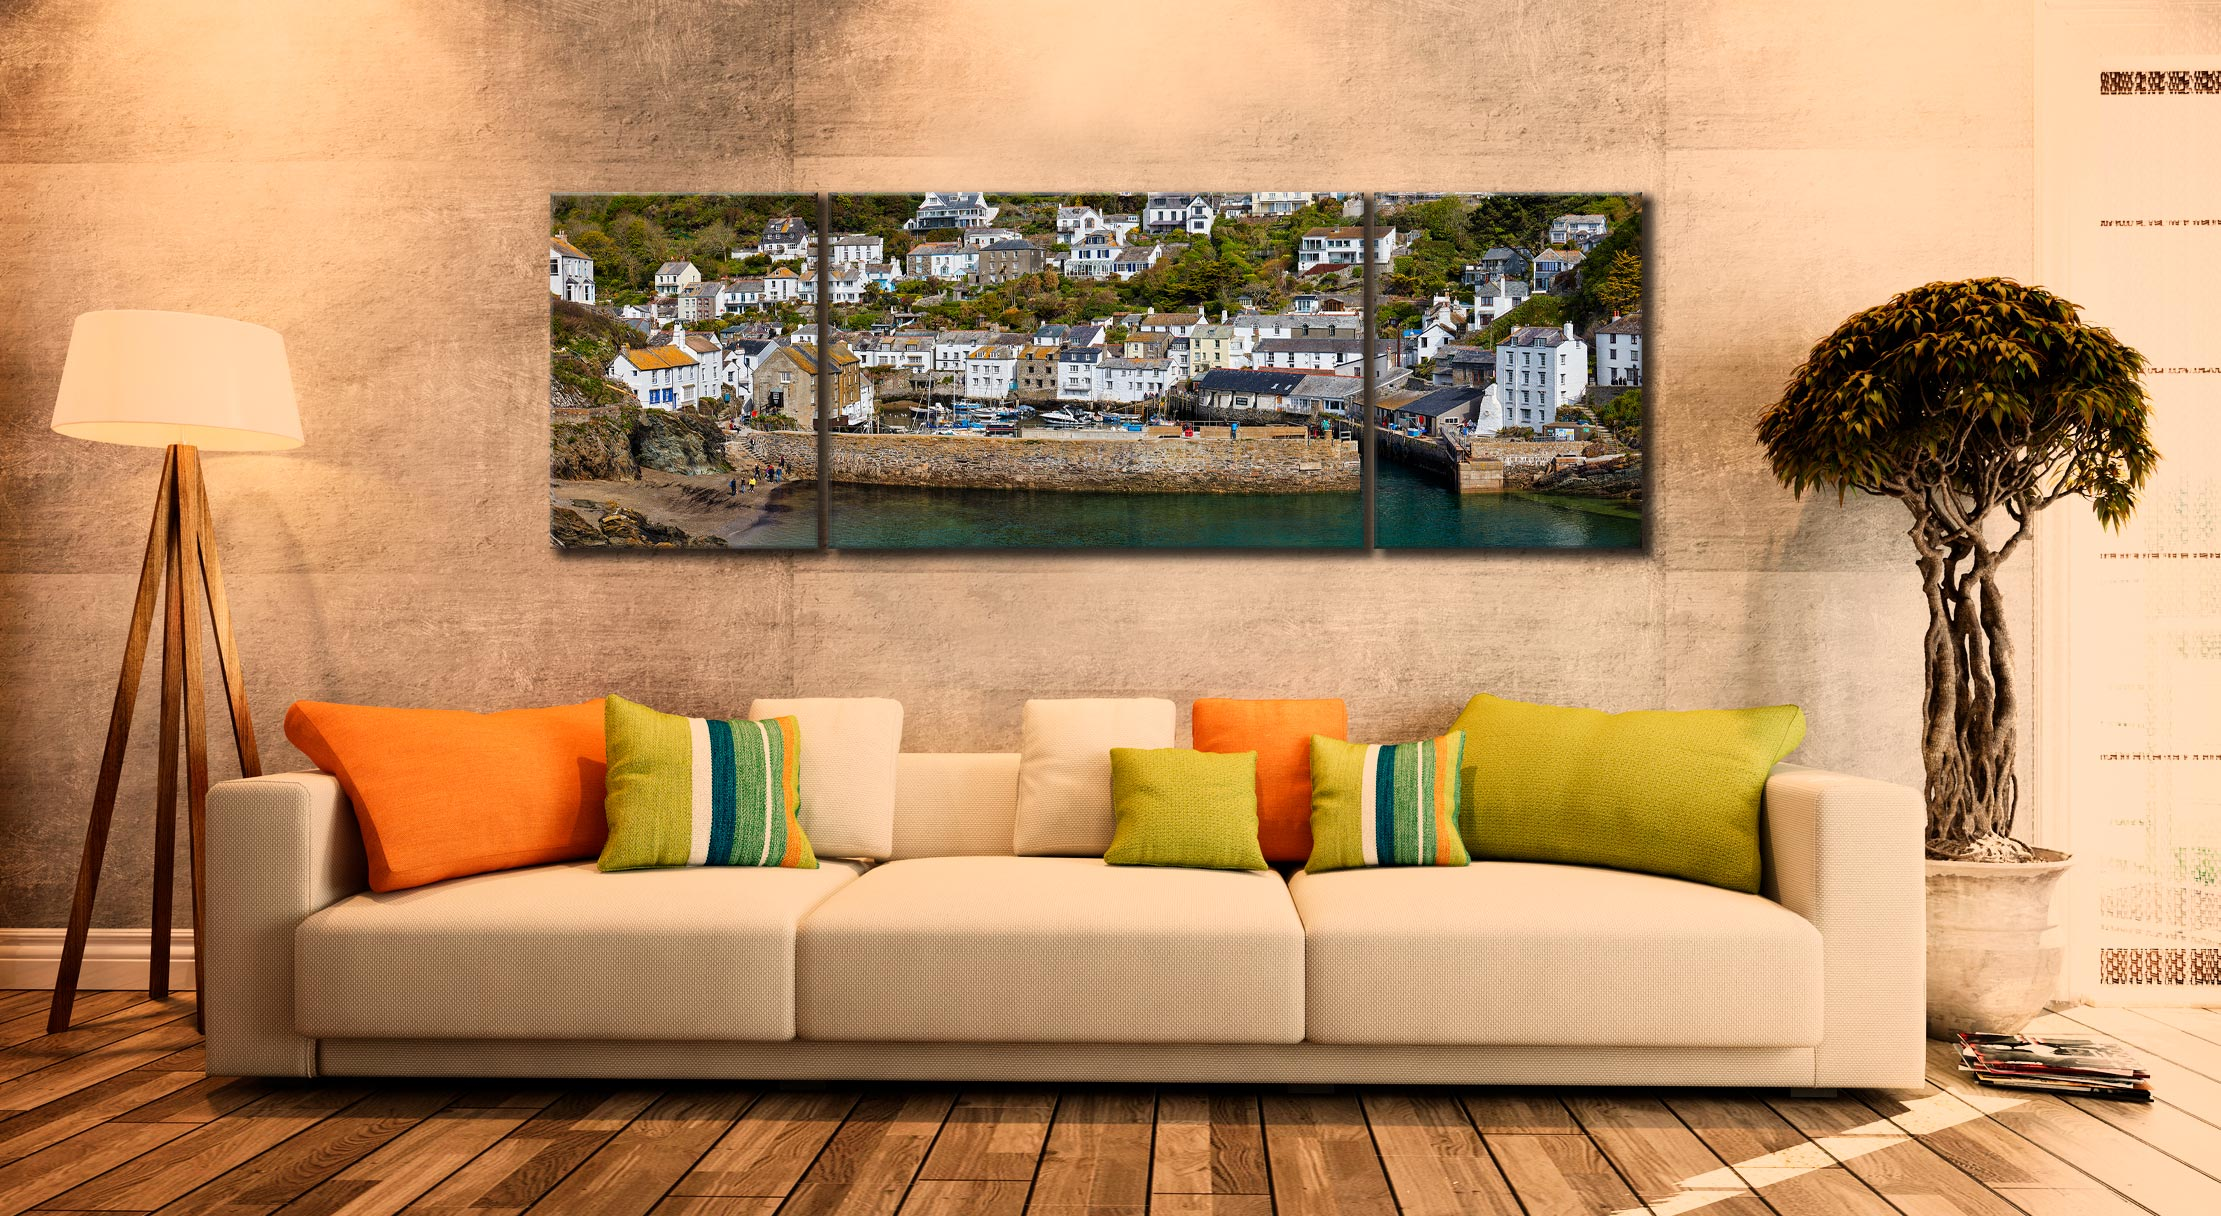 Polperro Harbour Wall - 3 Panel Wide Mid Canvas on Wall